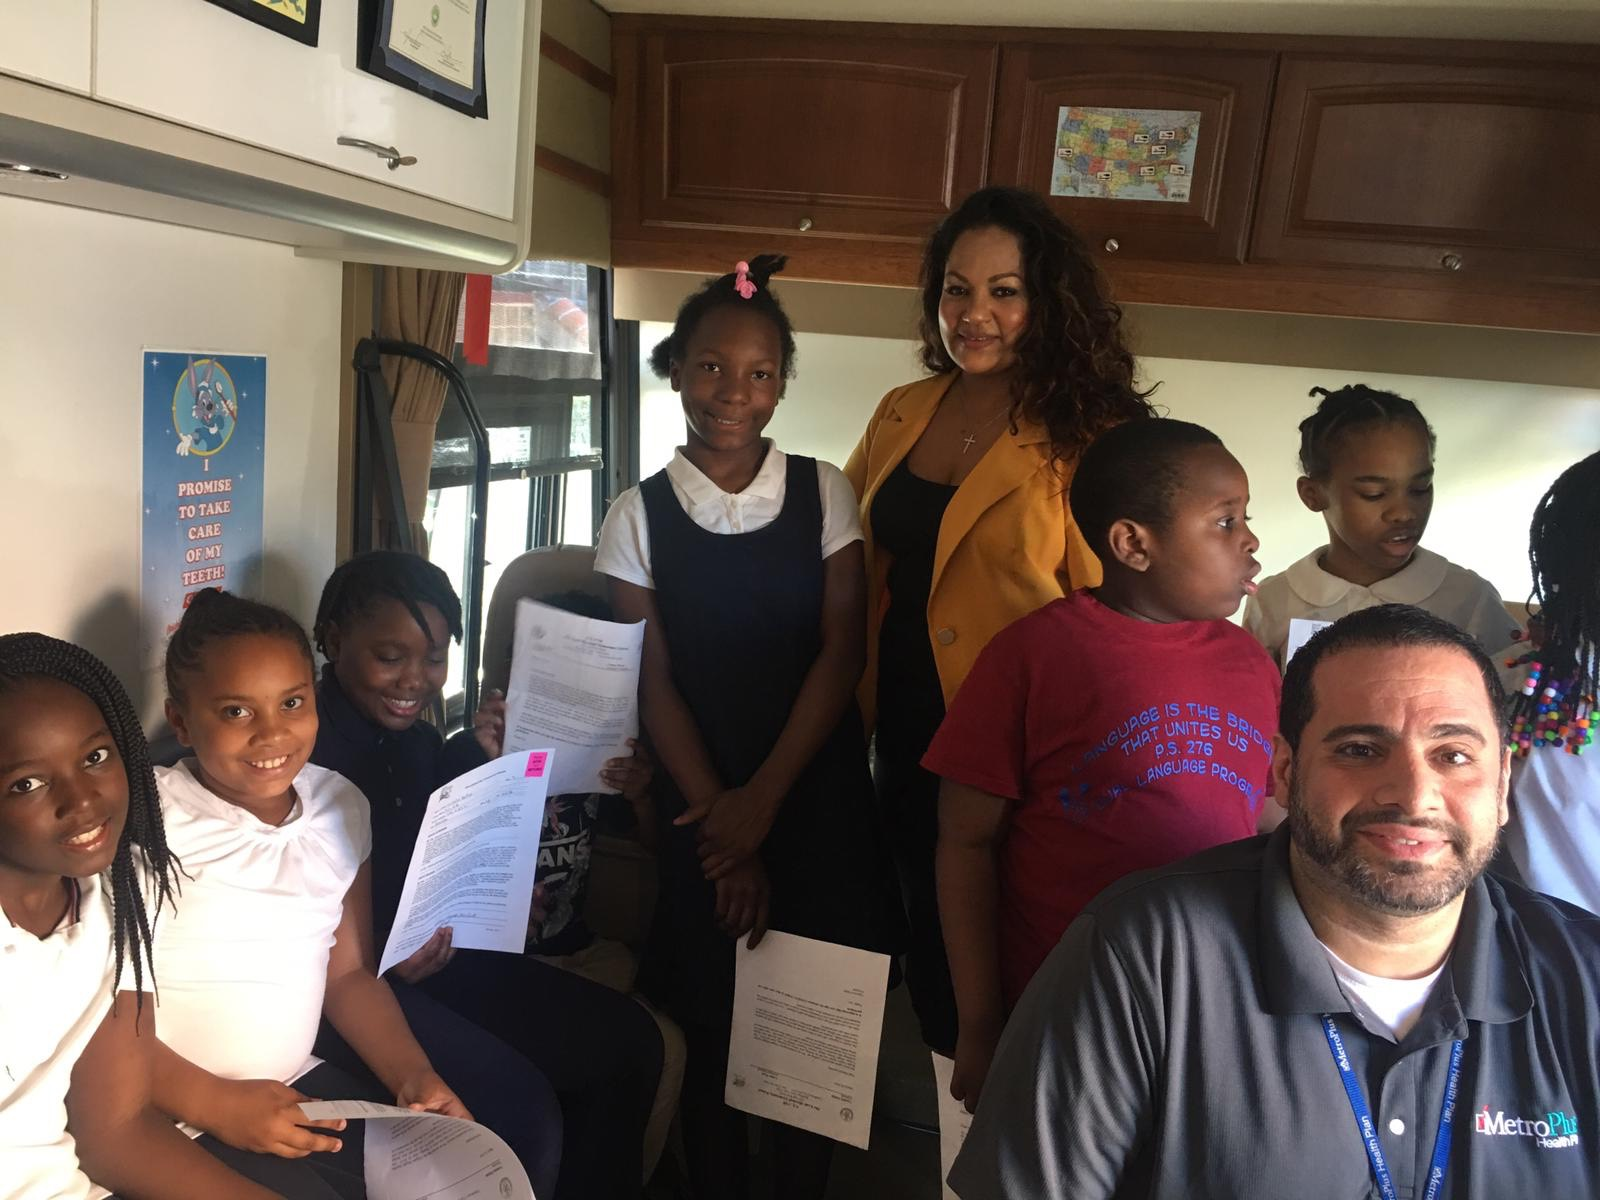 Colgate Bright Smiles, Bright Futures in conjunction with Assembly member Jaime Williams showcase the importance of good oral health habits with students from P.S 276.